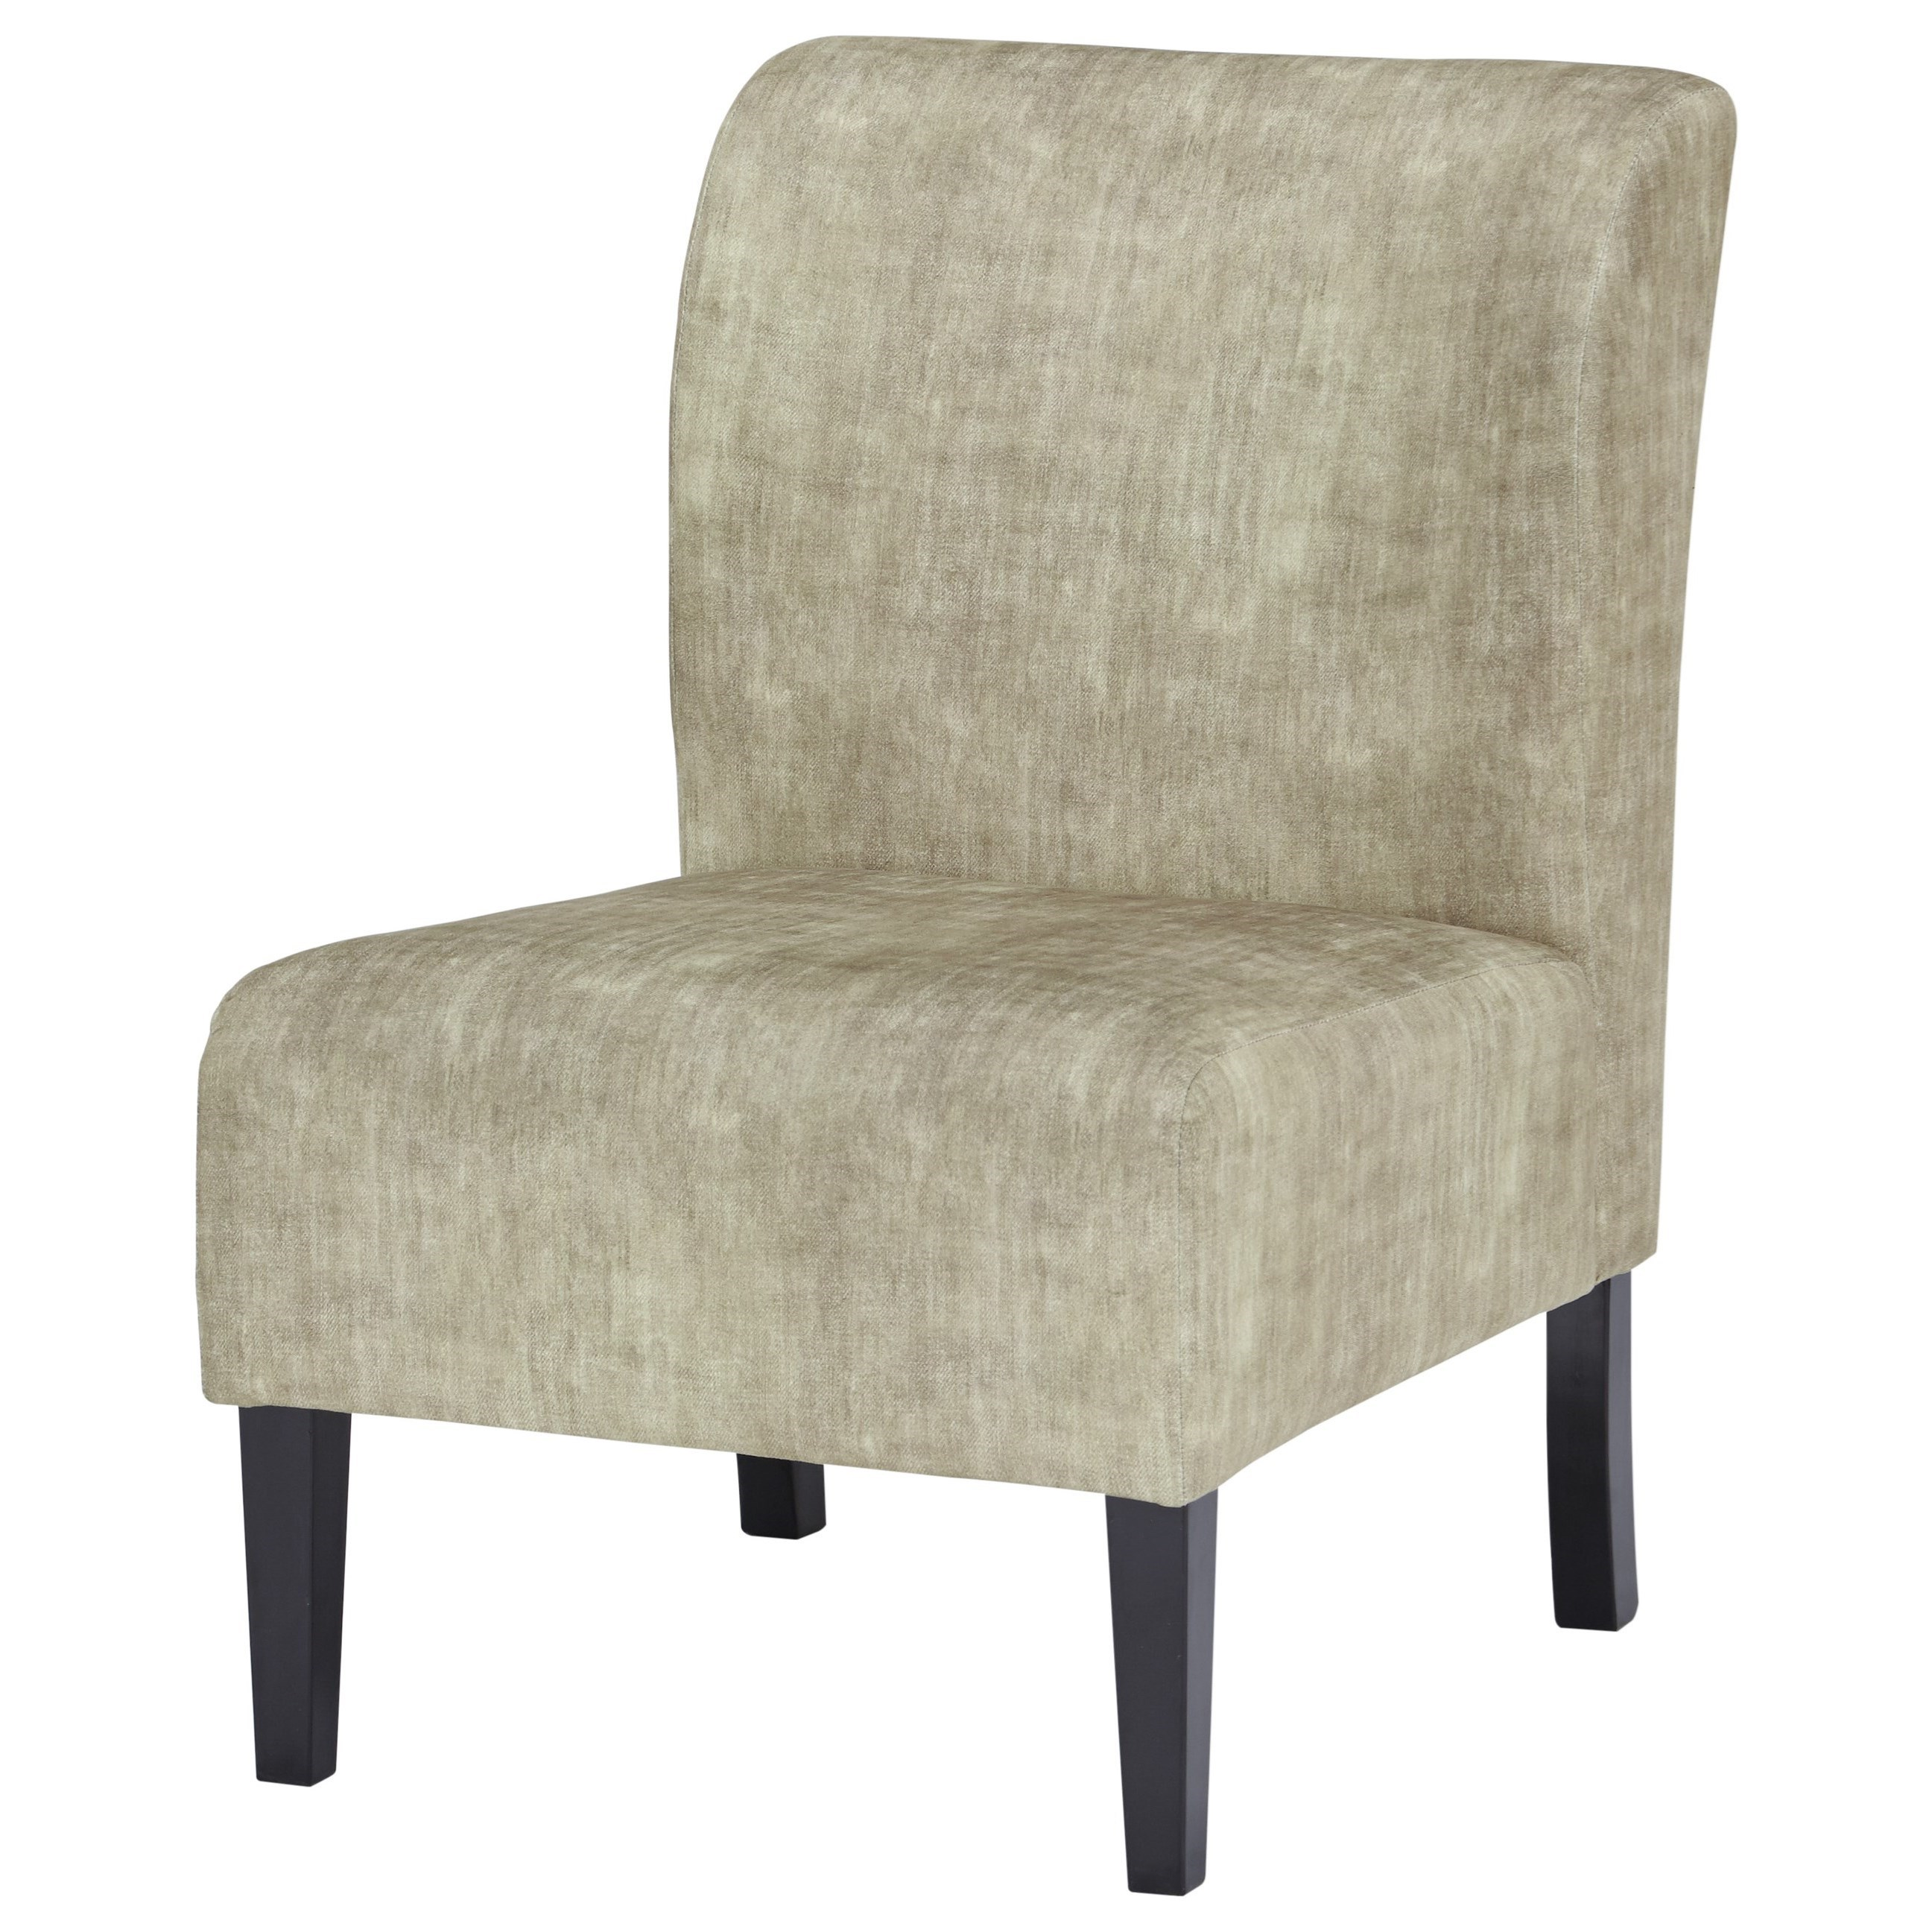 Signature Design by Ashley Triptis Accent Chair - Item Number: A3000067